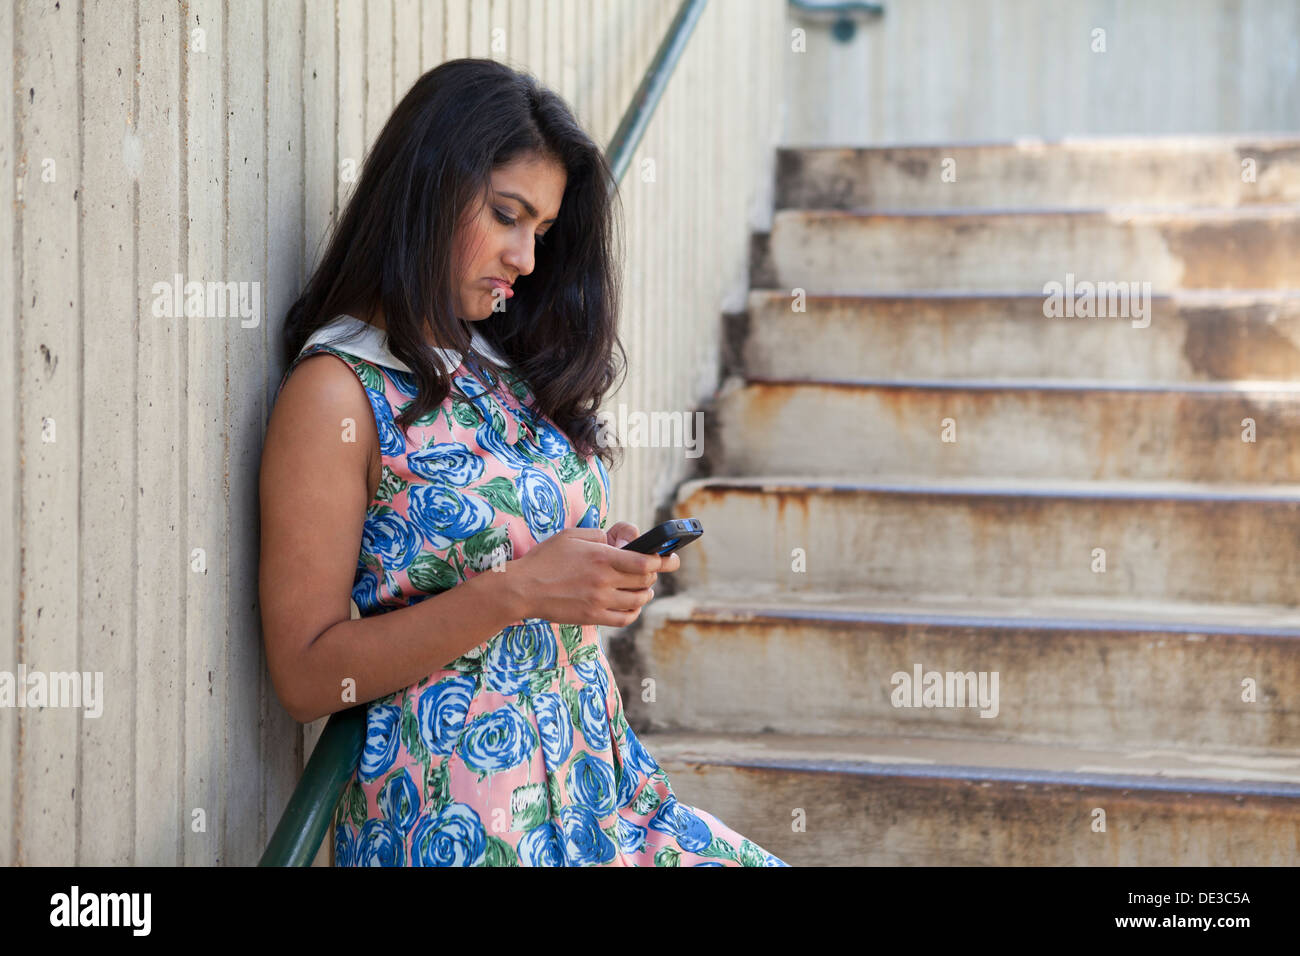 Woman looking at cell phone - Stock Image